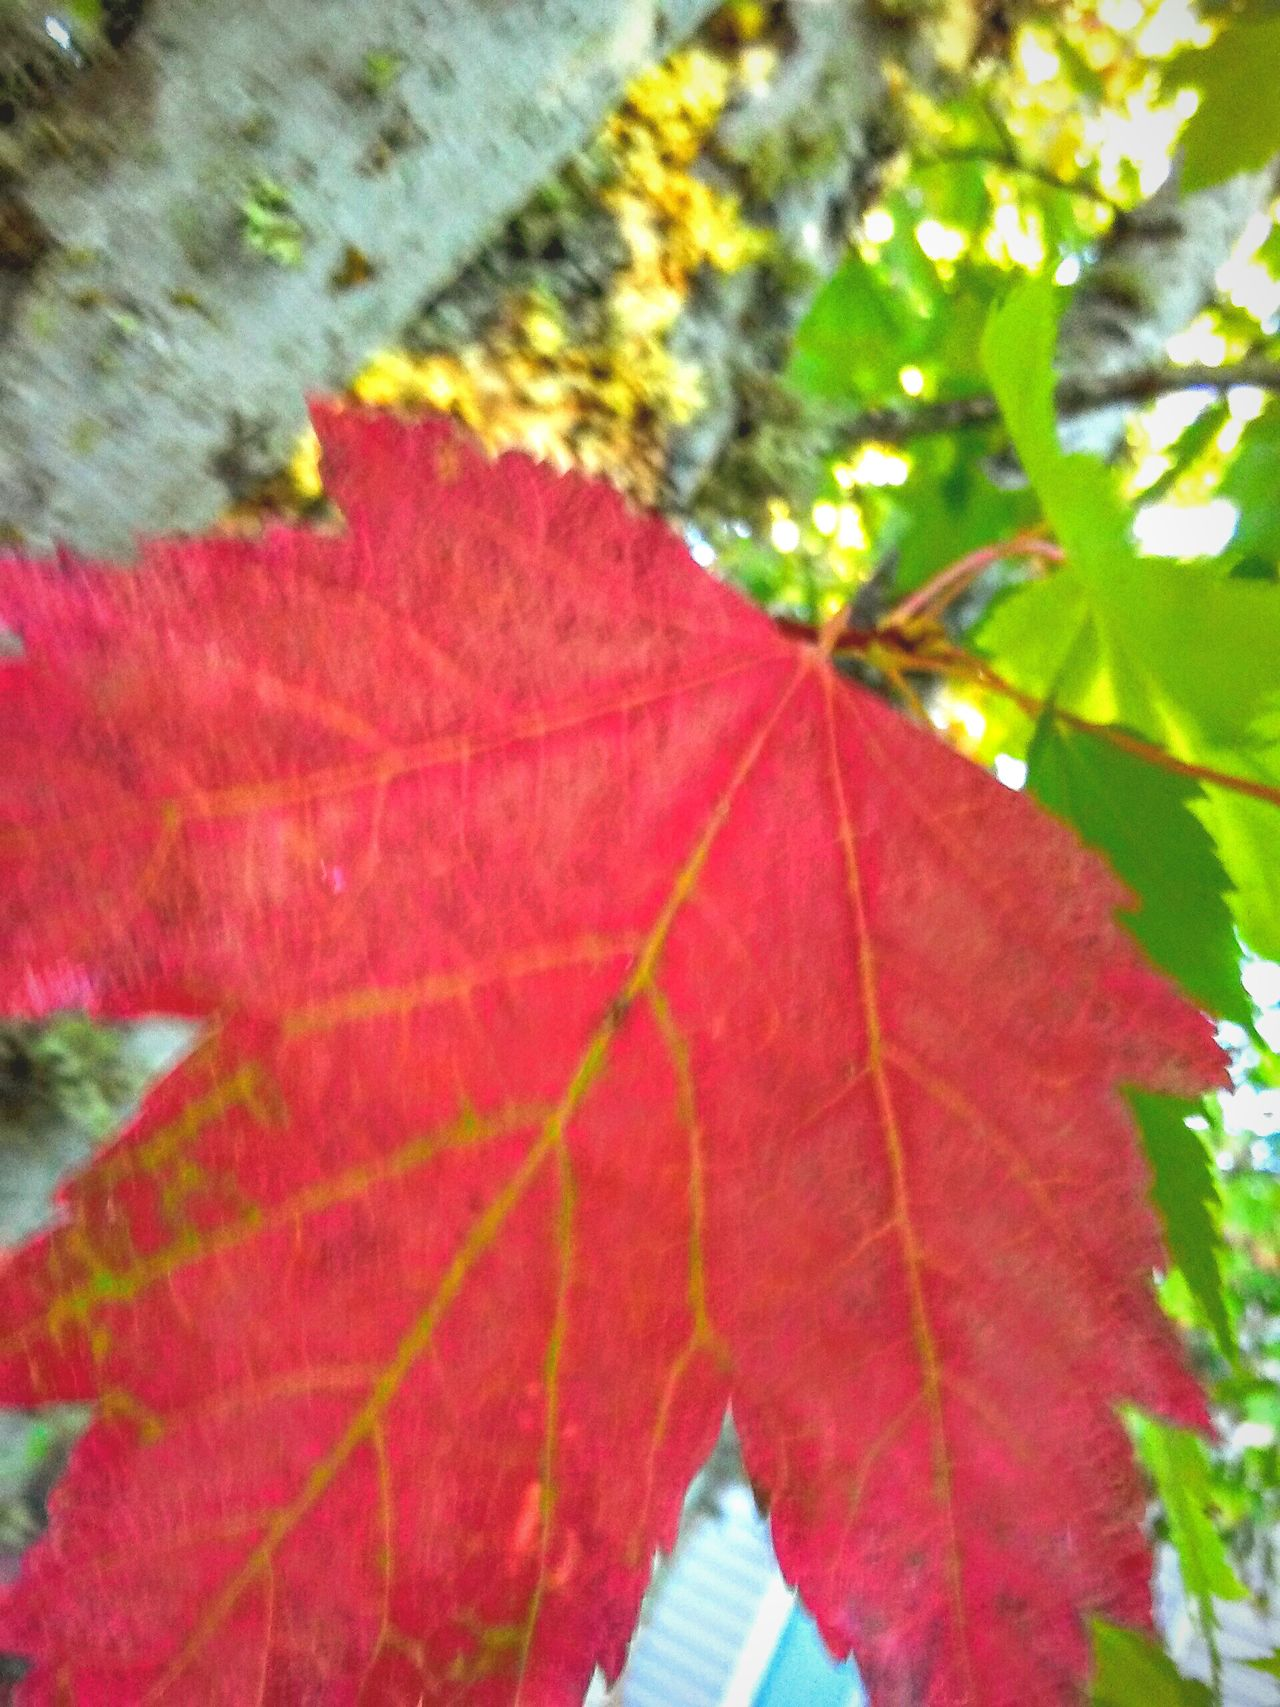 Leaves_collection Red Leaf Amongst Green Leaves Focus On Background Focus On Foreground Steamzoofamily Great Atmosphere Essence Of Summer Essence Of Fall Birds Eye View Up Close And Personal Eyeemphoto Color Palette Showcase August Outdoor Photography EyeEm Gallery Trees Sun And Sky Tree Lover Nature Photography Nature_collection Trees Outside Photography Spectacular Isnt Nature Grand? Brilliance  Bitchen View